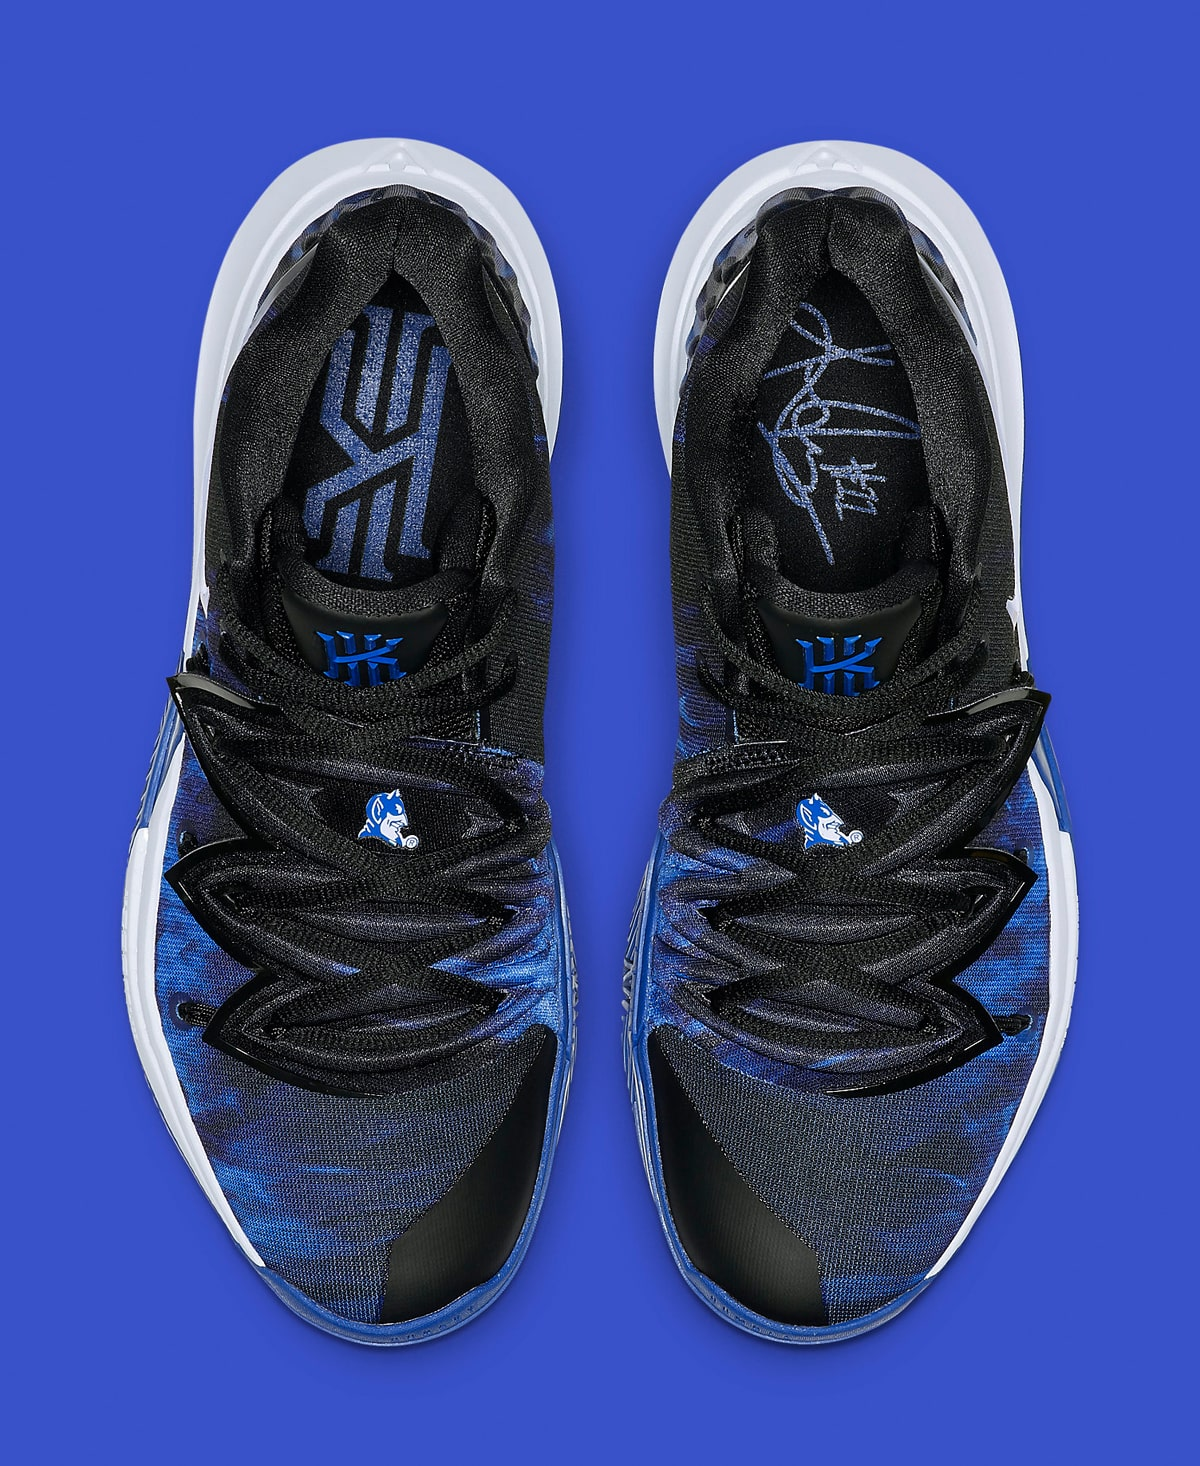 06d7eff374c7 Where to Buy the Nike Kyrie 5